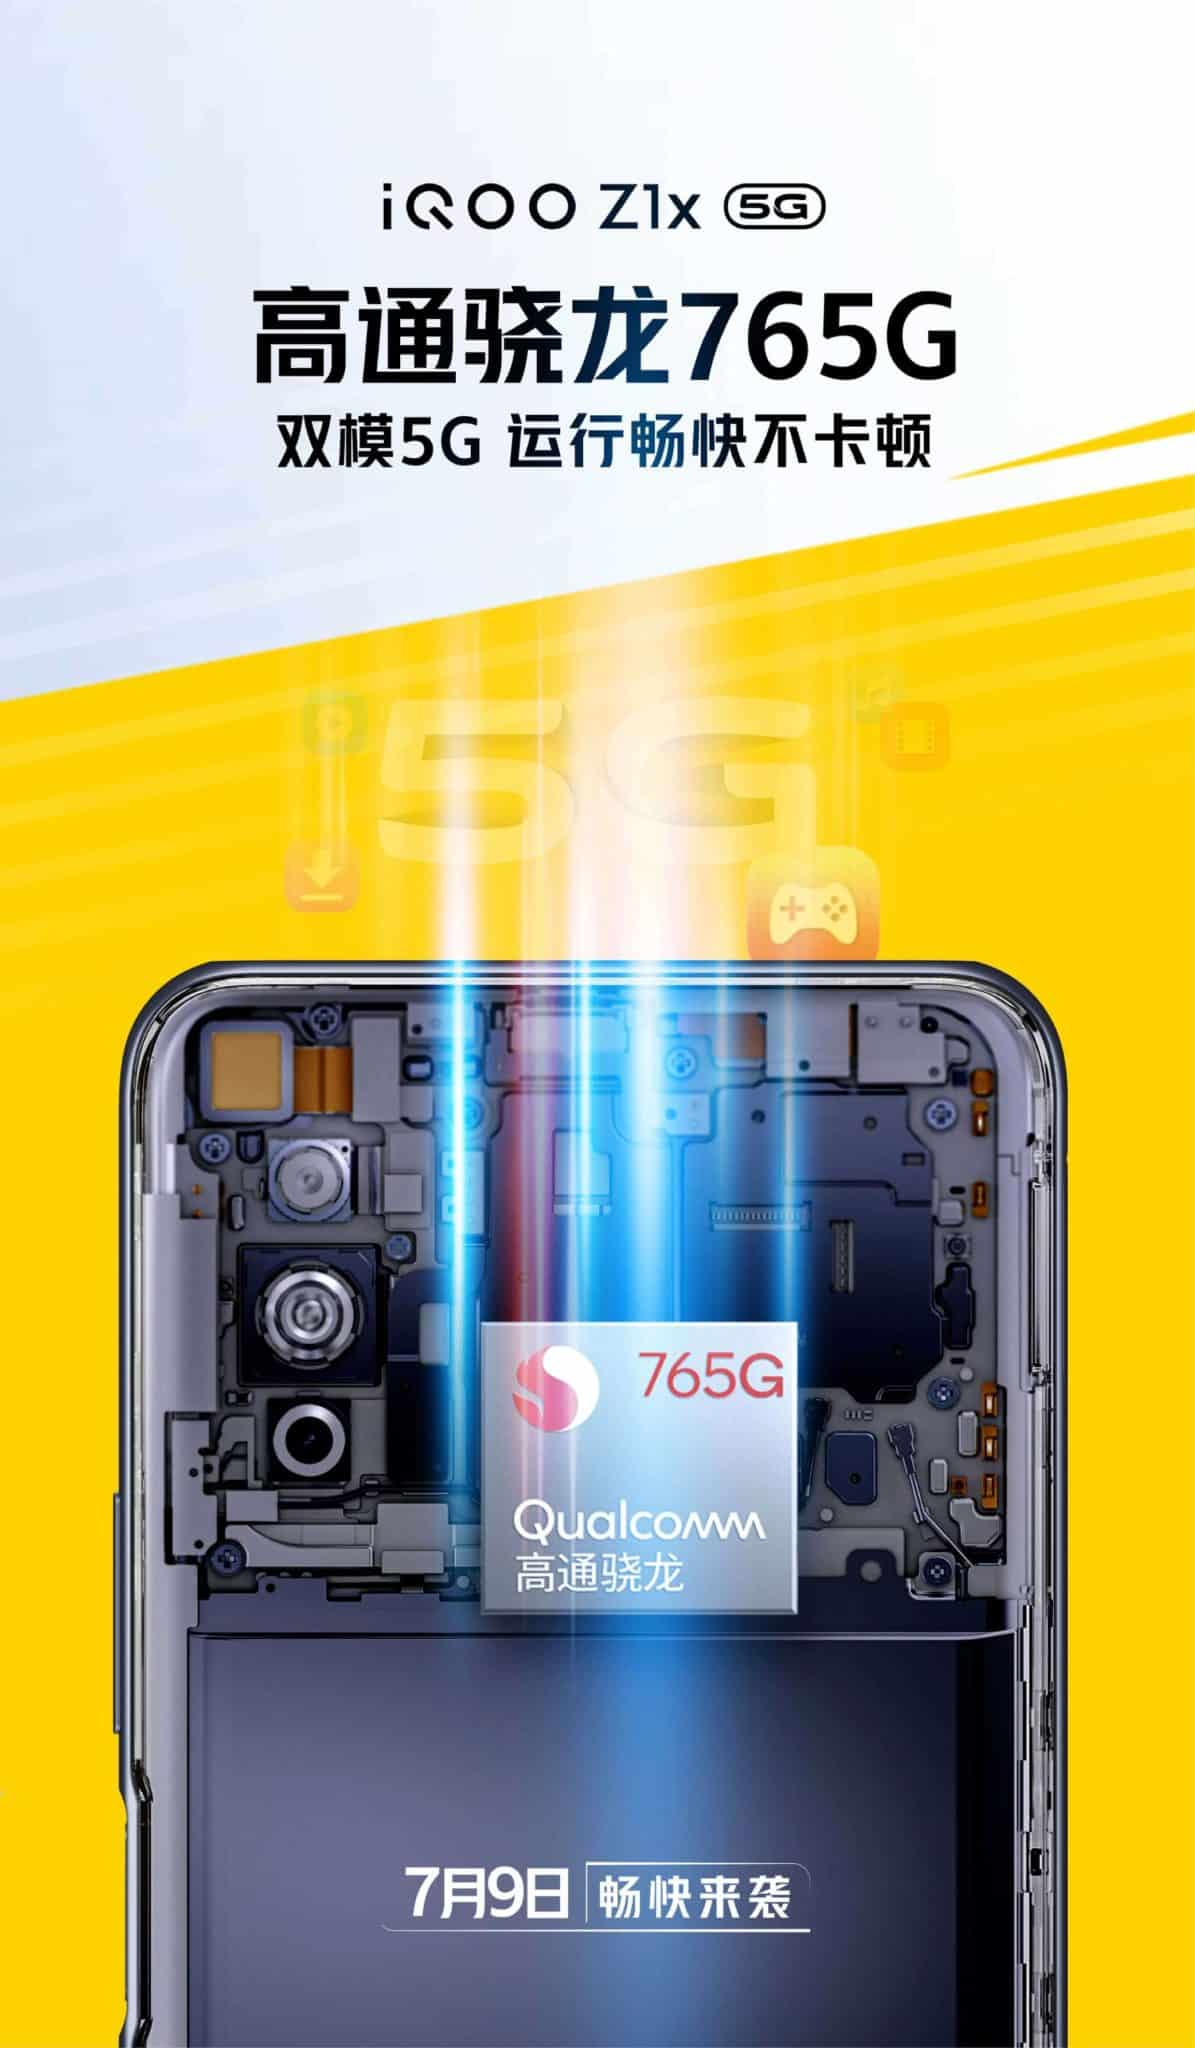 iQOO z1x 5G to have Snapdragon 765G SoC, officially confirmed